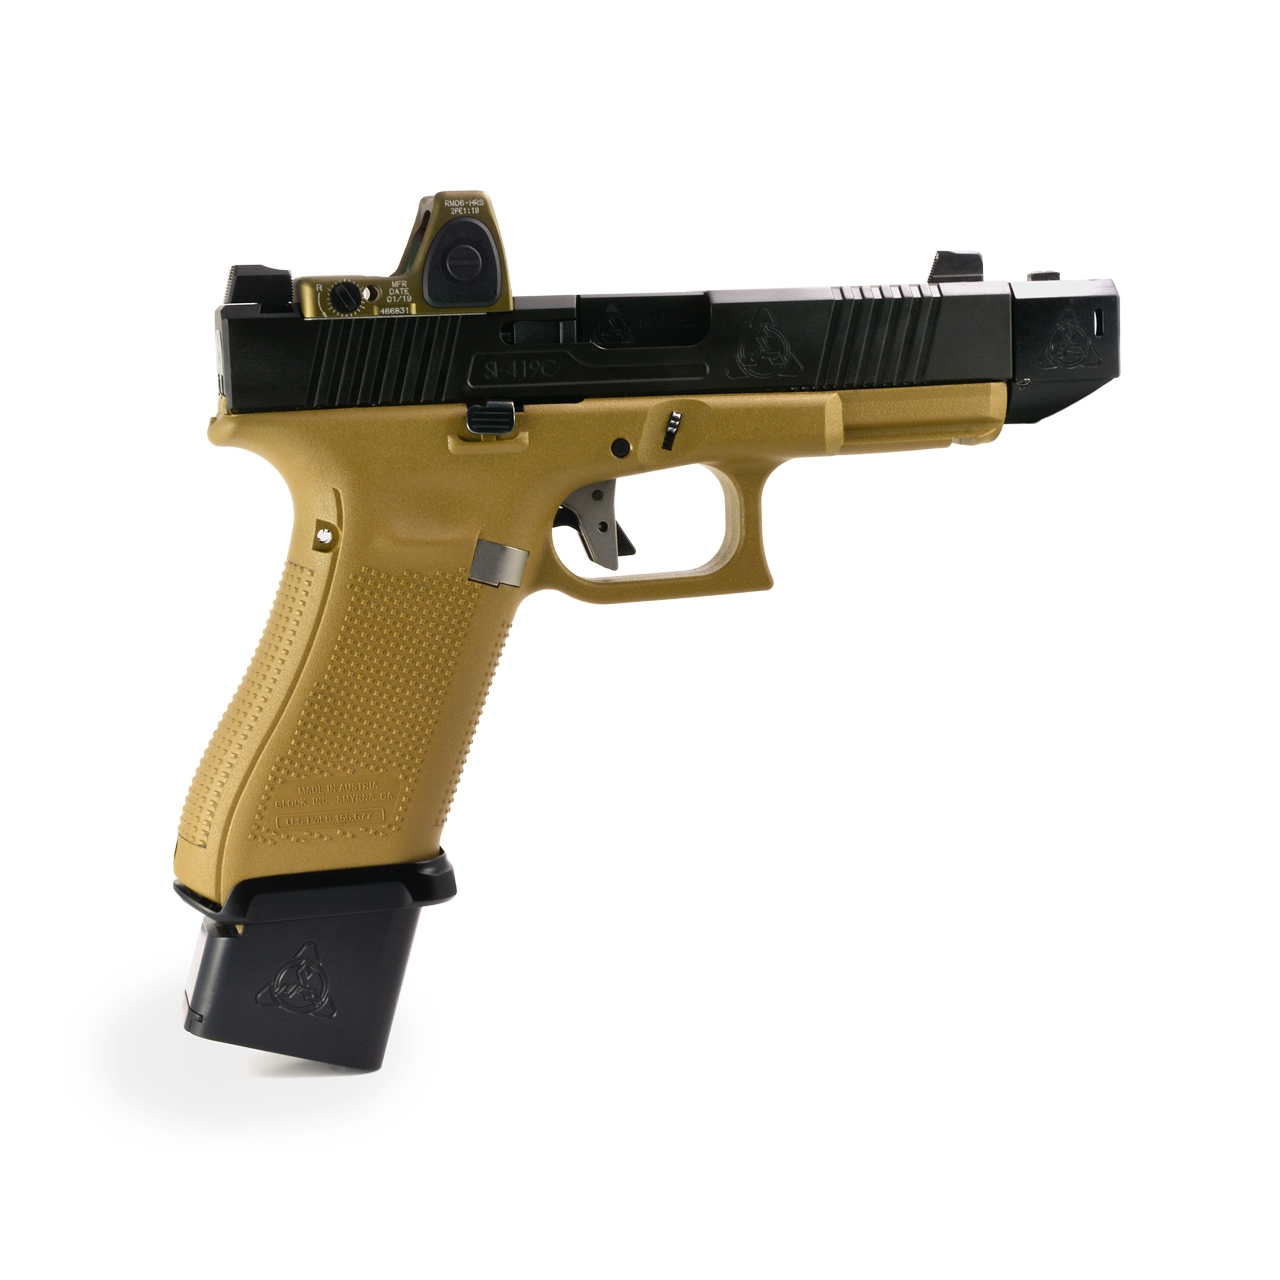 GUNFIGHTER MAGWELL FOR GLOCK 19X AND GLOCK 45 - header image